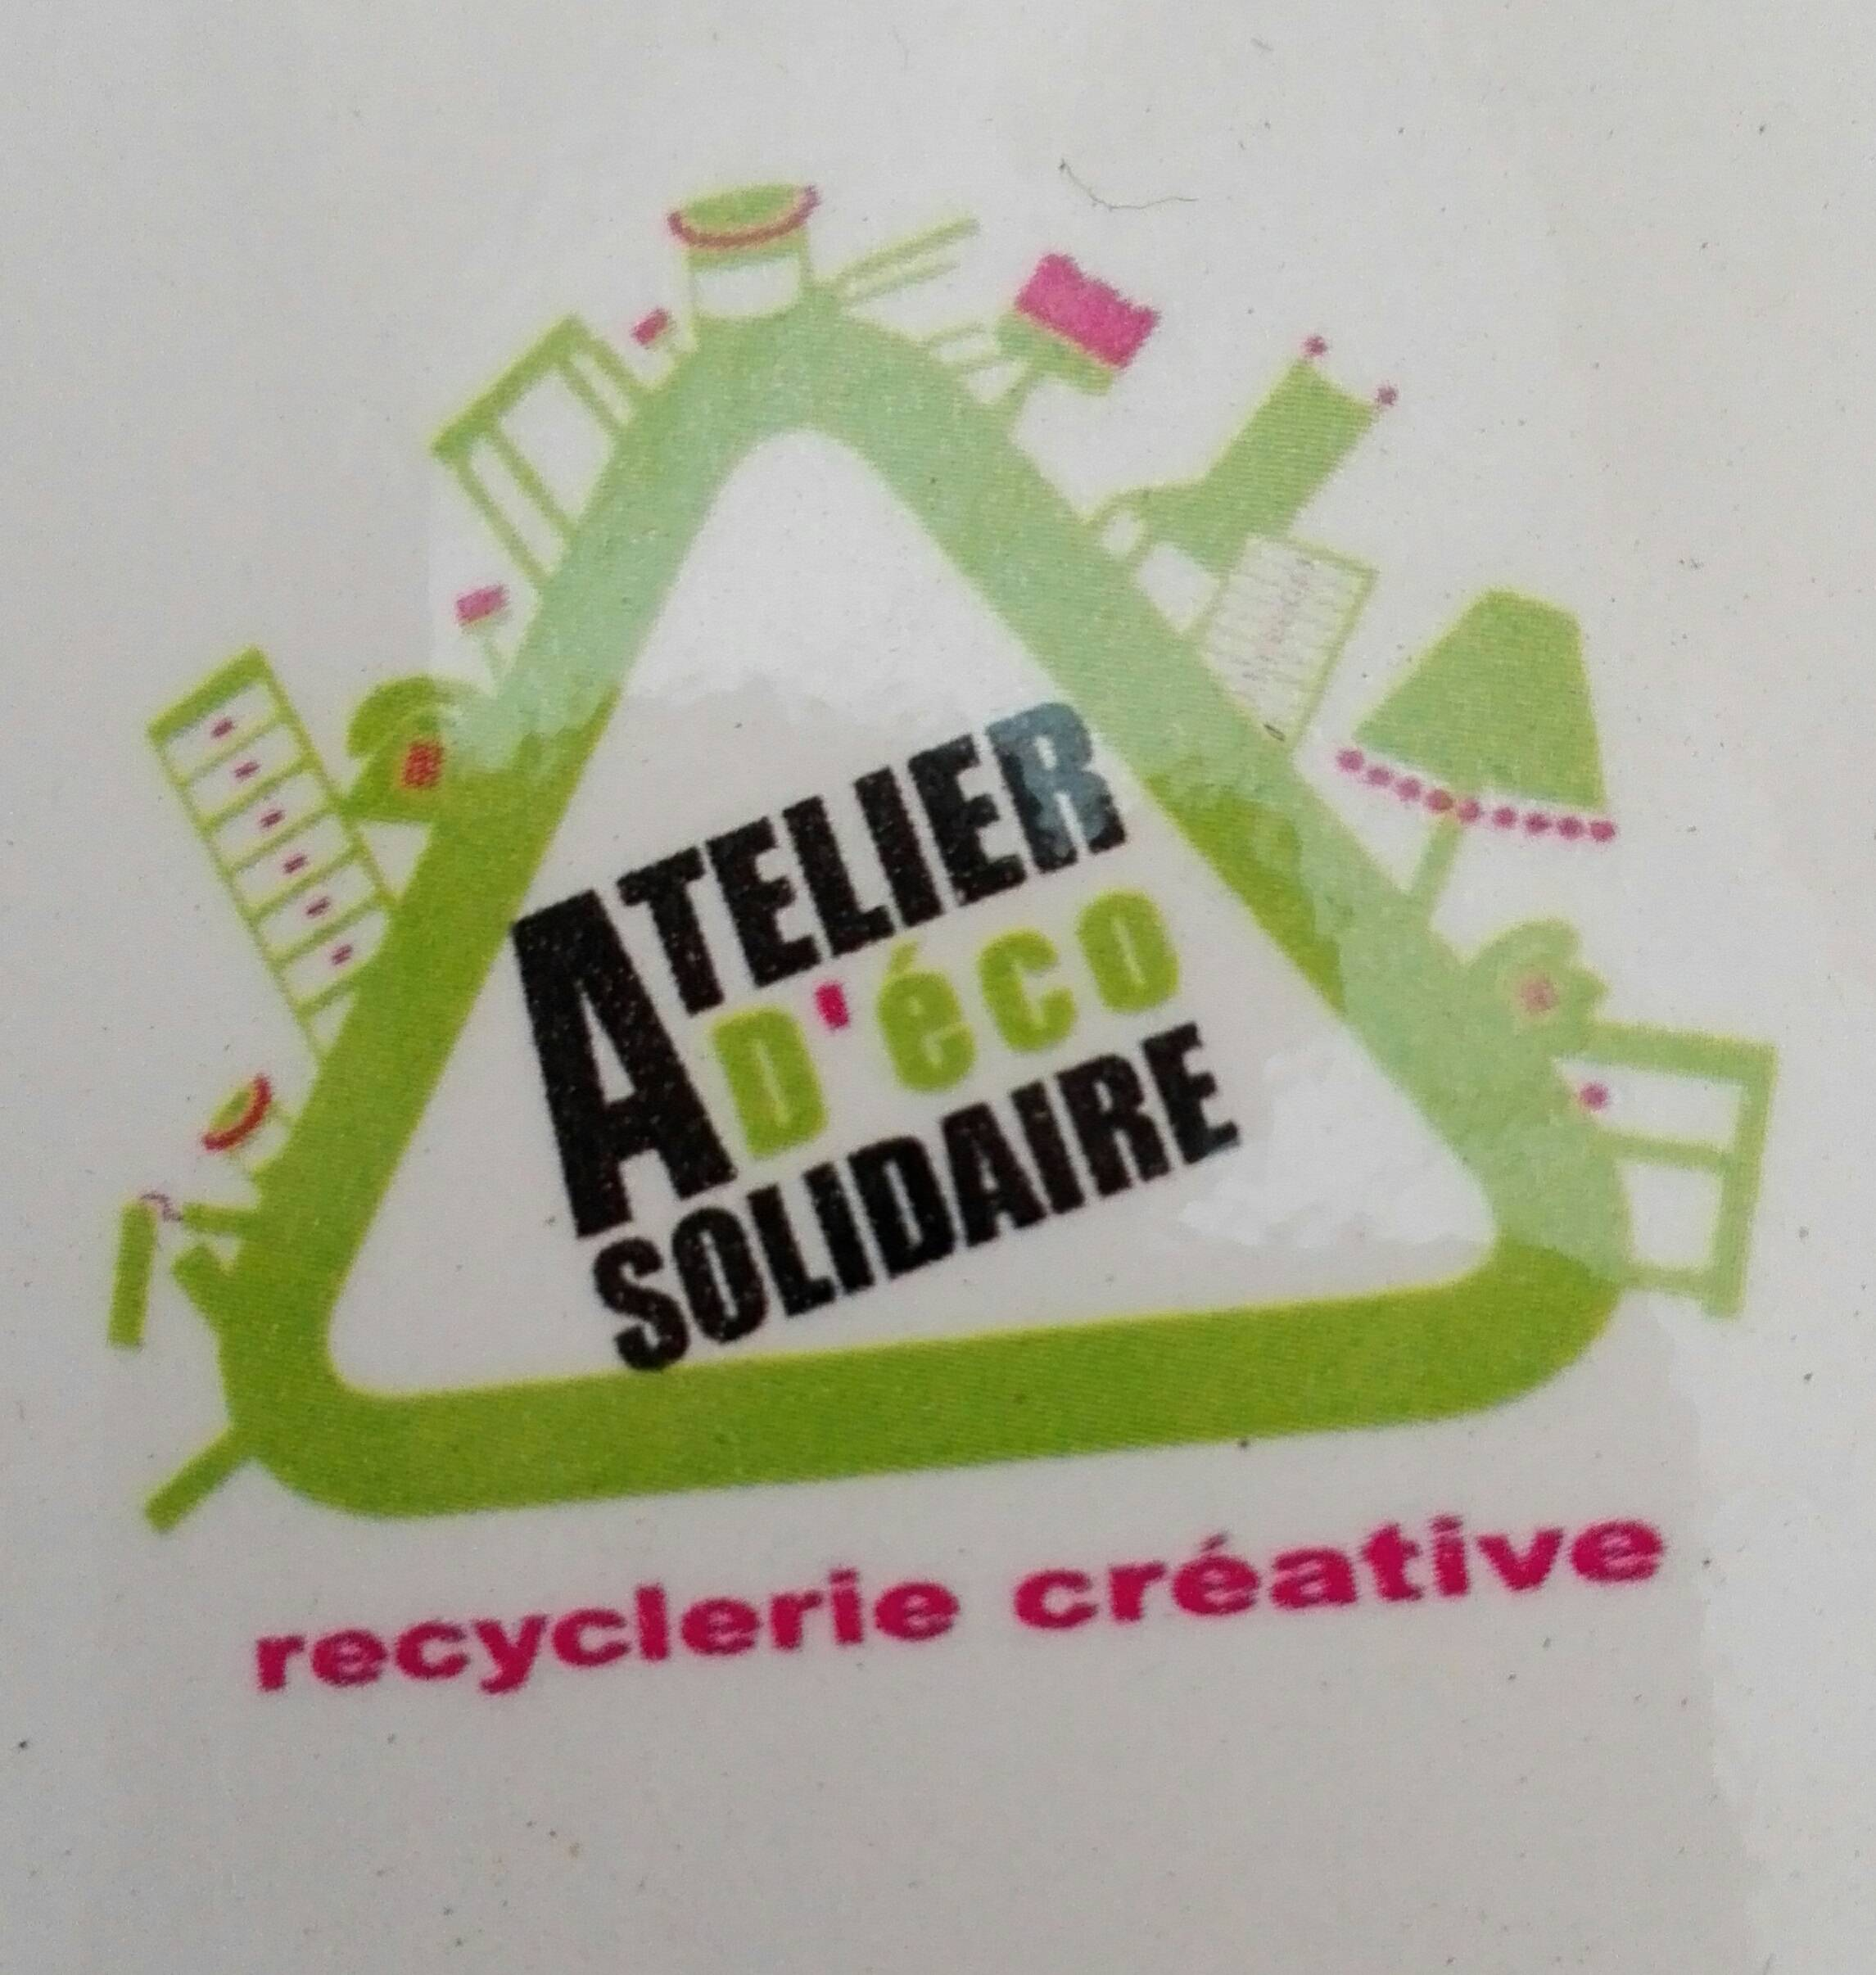 Photo 1: Atelier d'éco solidaire